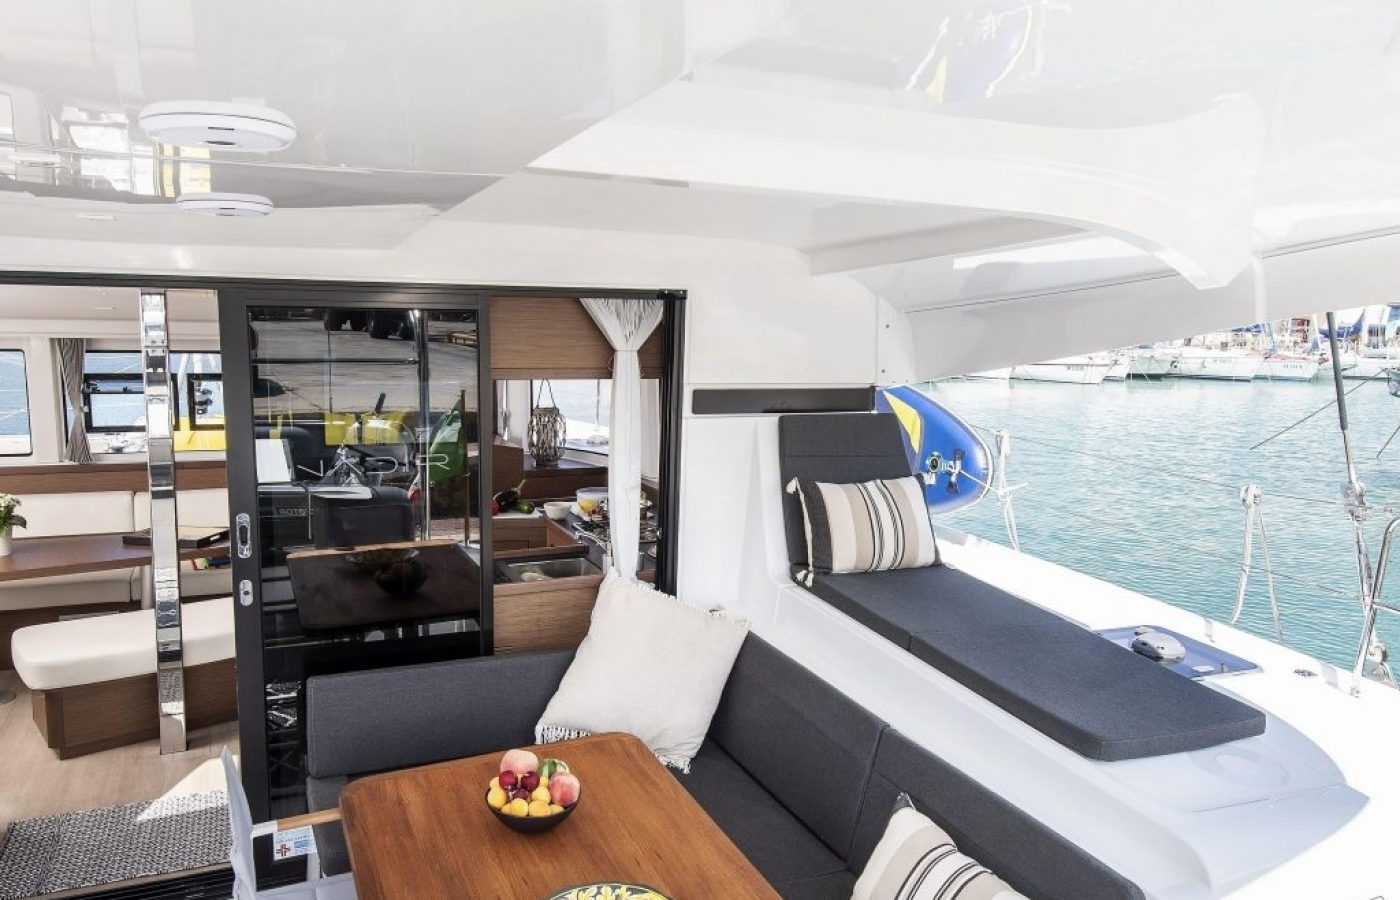 Large sliding doors with white and navy seating at the stern